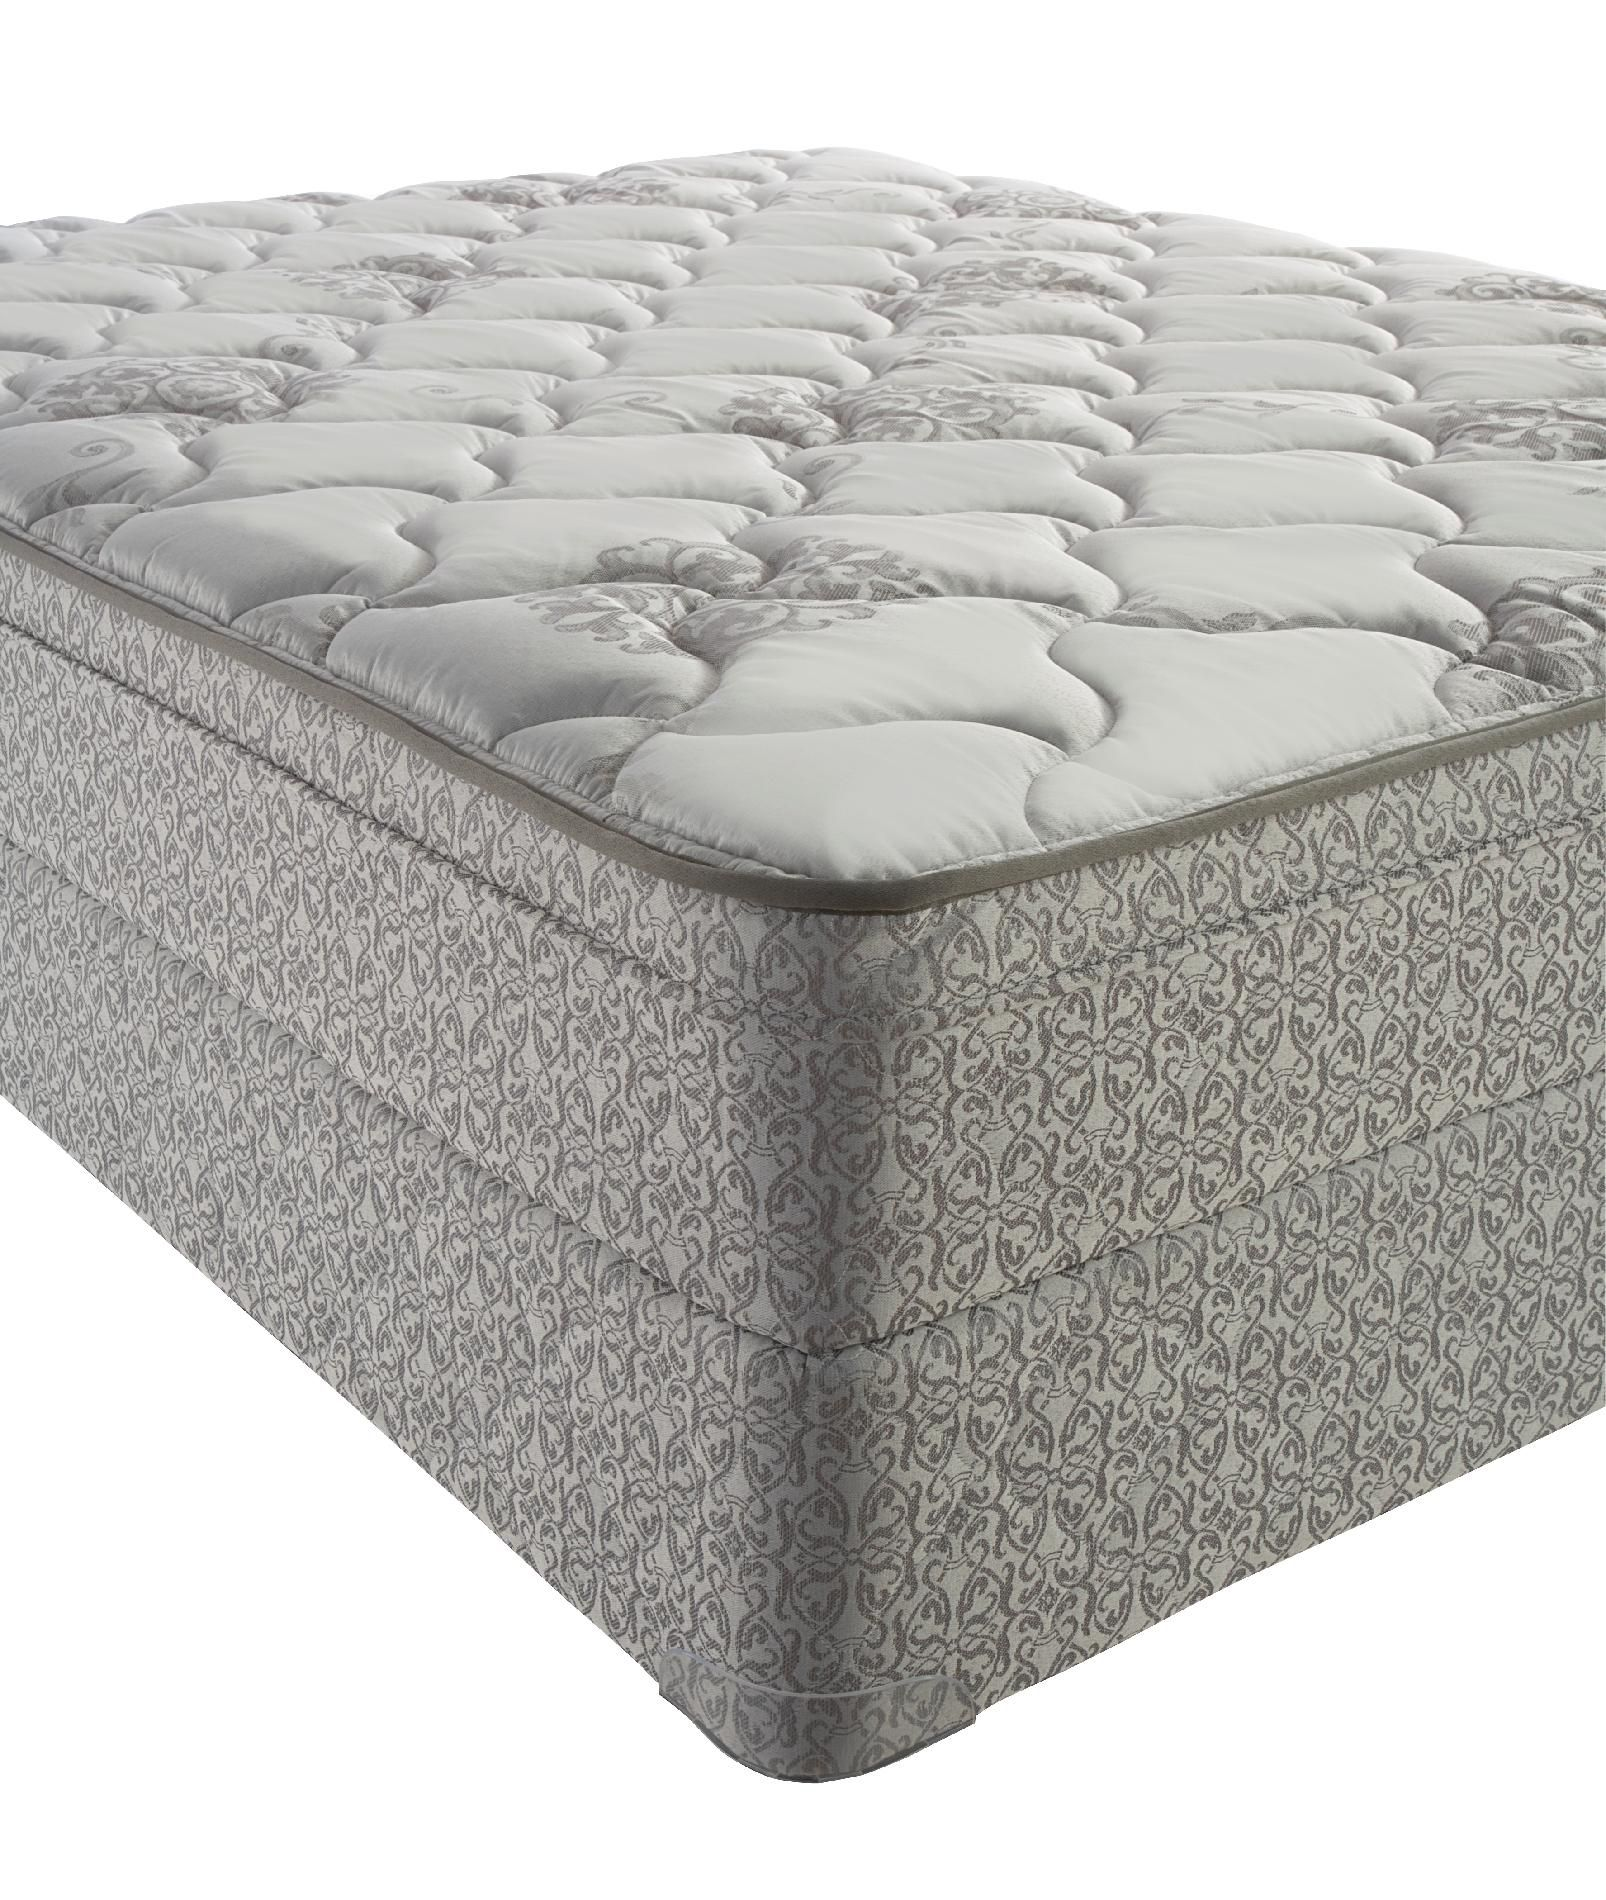 Tambour-Select-Plush-Euro-Pillowtop-Cal-King-Mattress-Only